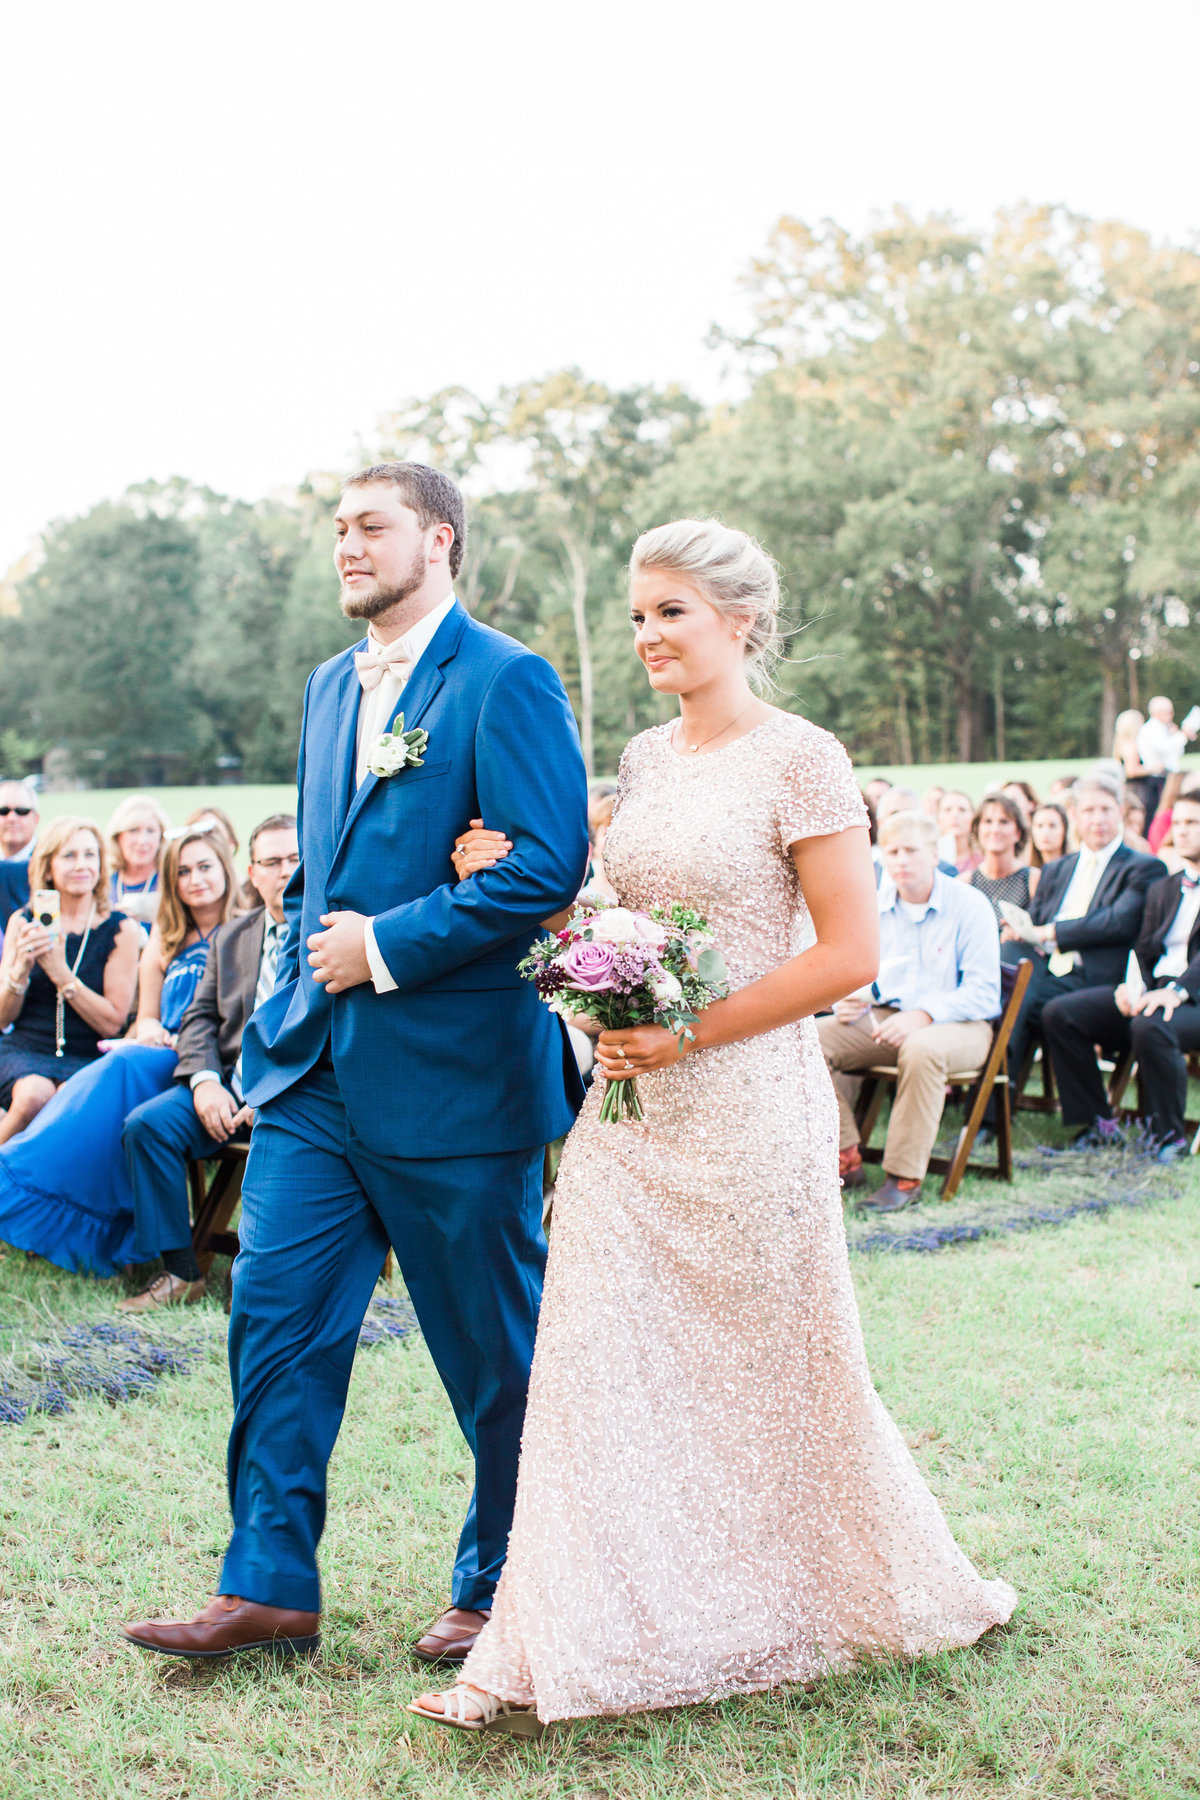 Eden & Will Wedding_Lindsay Ott Photography_Mississippi Wedding Photographer58